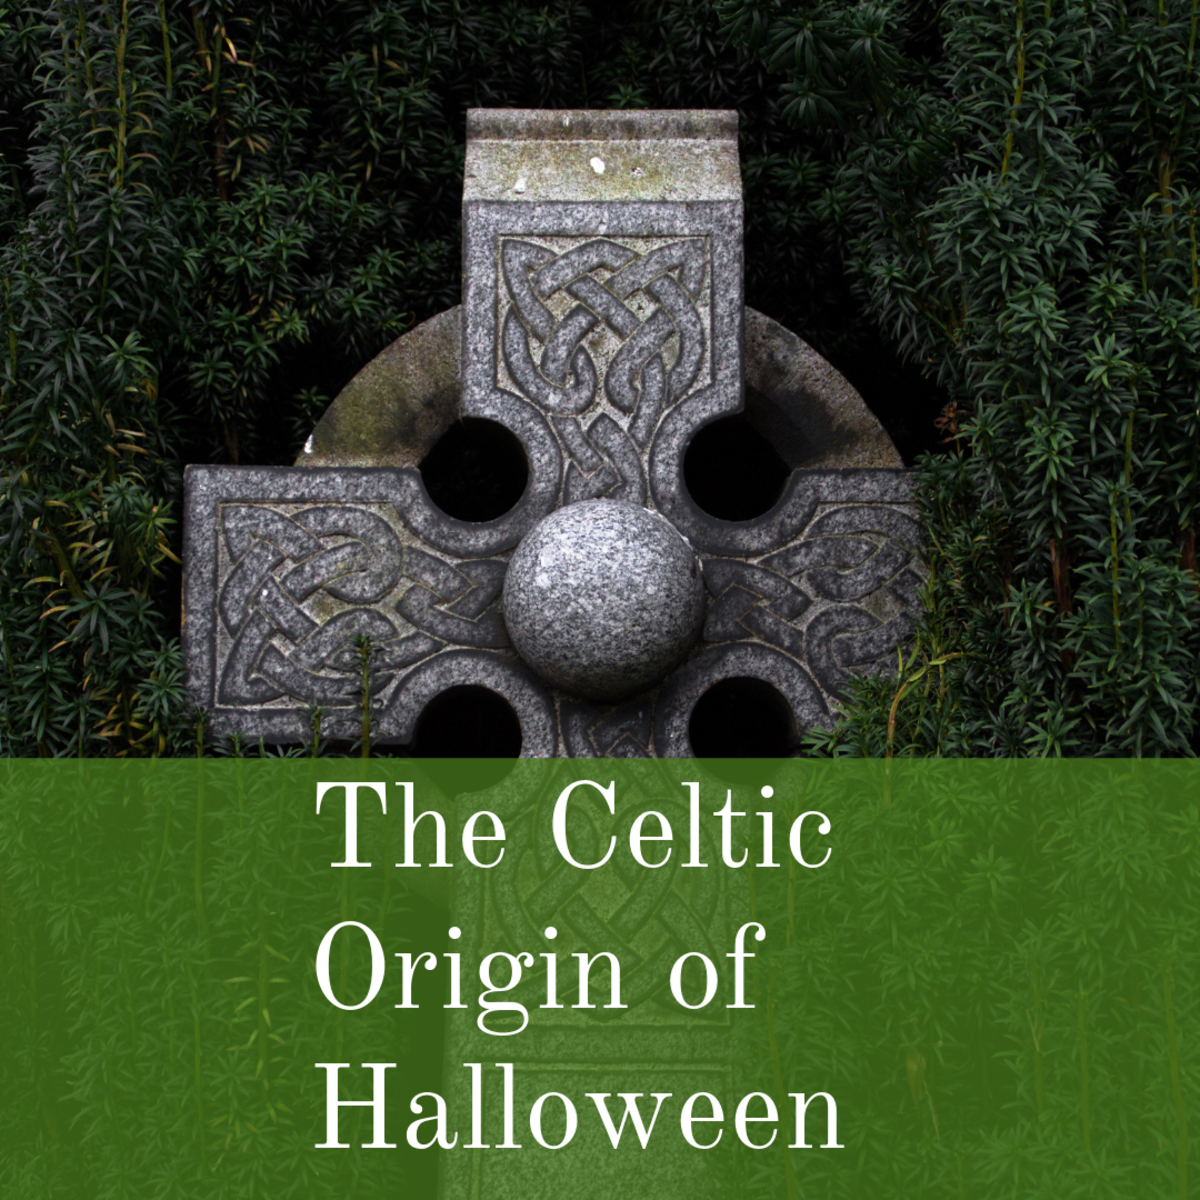 Learn the Celtic origins of Halloween.